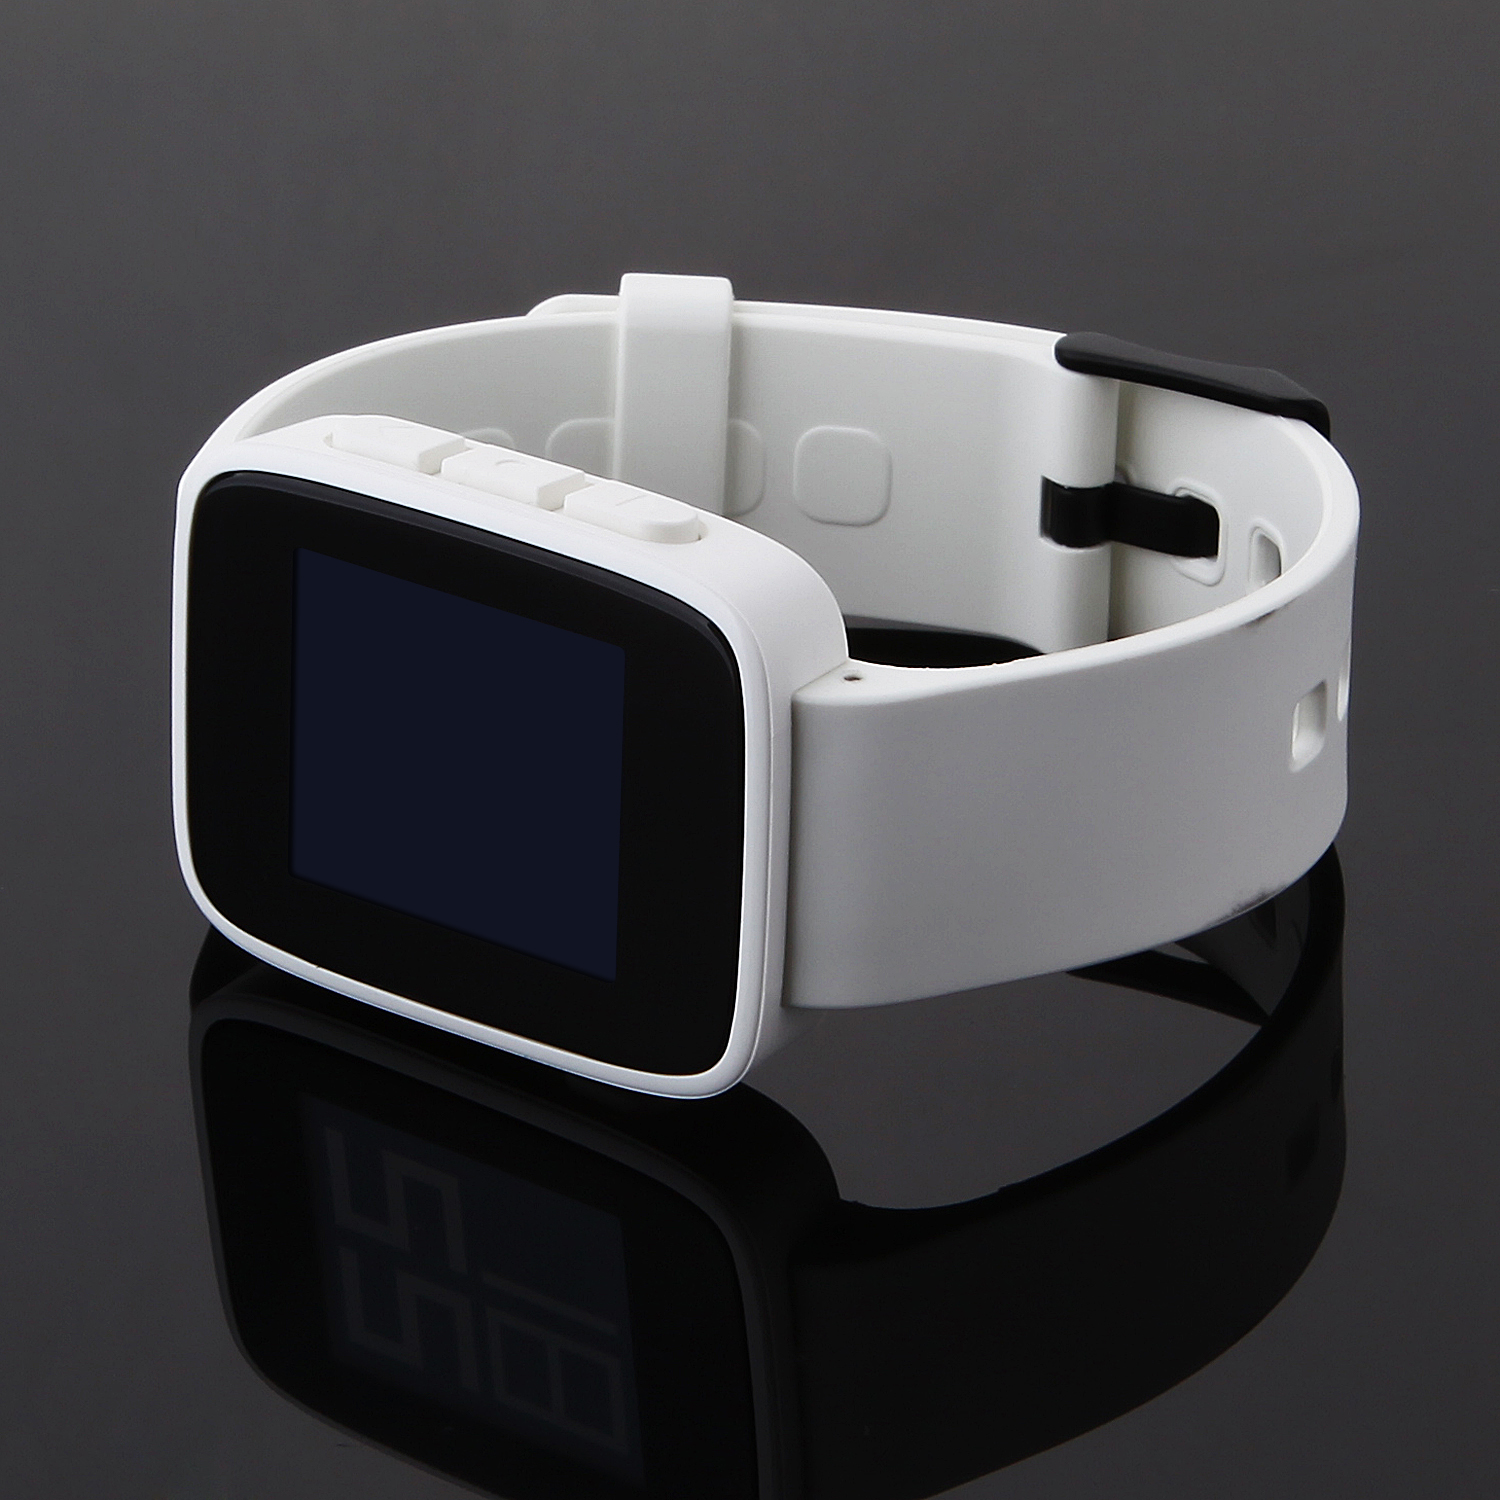 "WeLoop Tommy 1.26"" LCD Smart Watch w/ Bluetooth 4.0 Support Message Display -White"